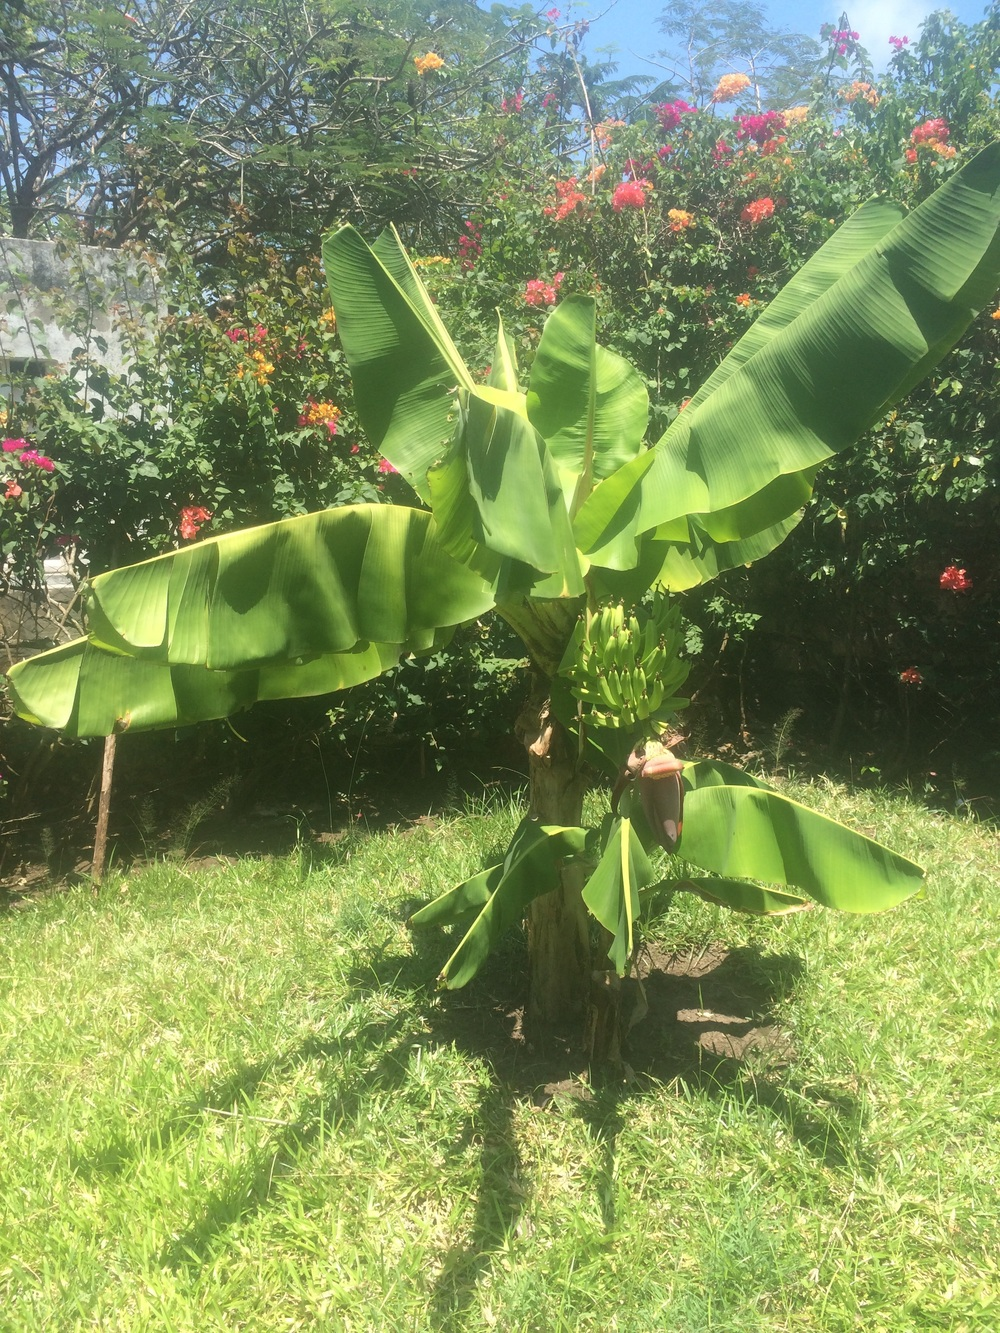 Banana tree. We saw a monkey on the tree behind it on the next property.